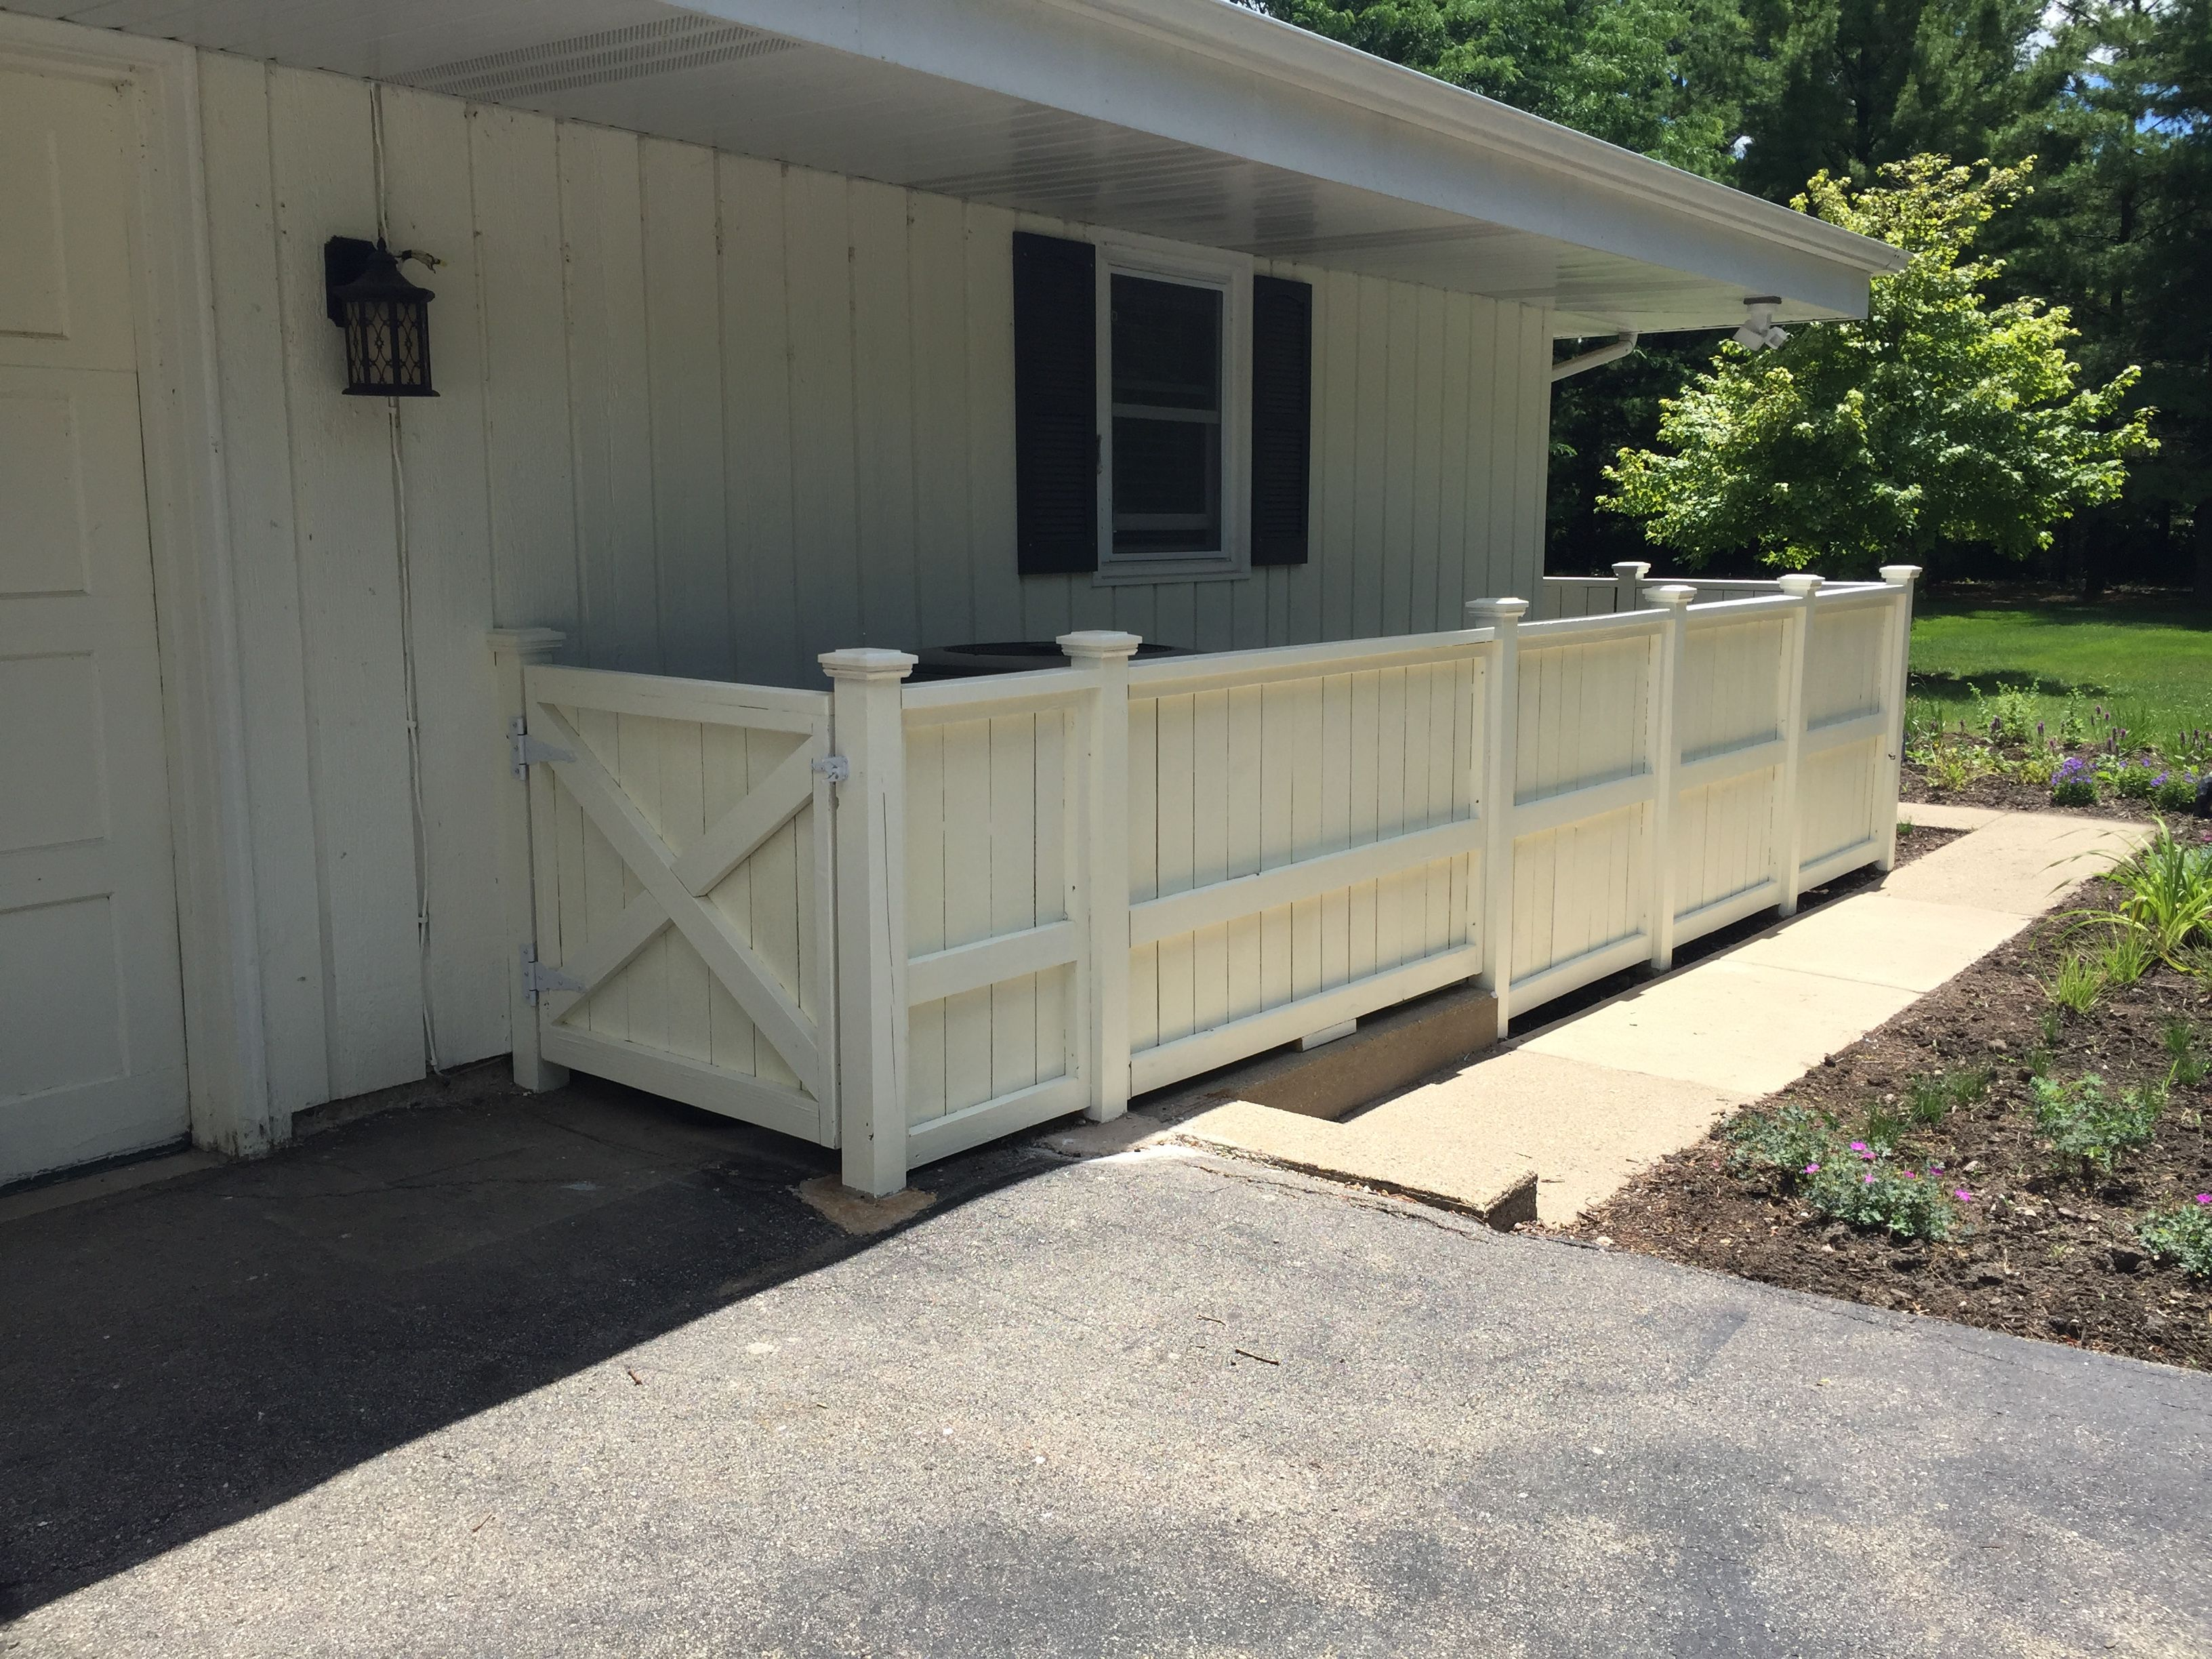 Removable Fence Panels Hide The Waste Container Air Conditioner